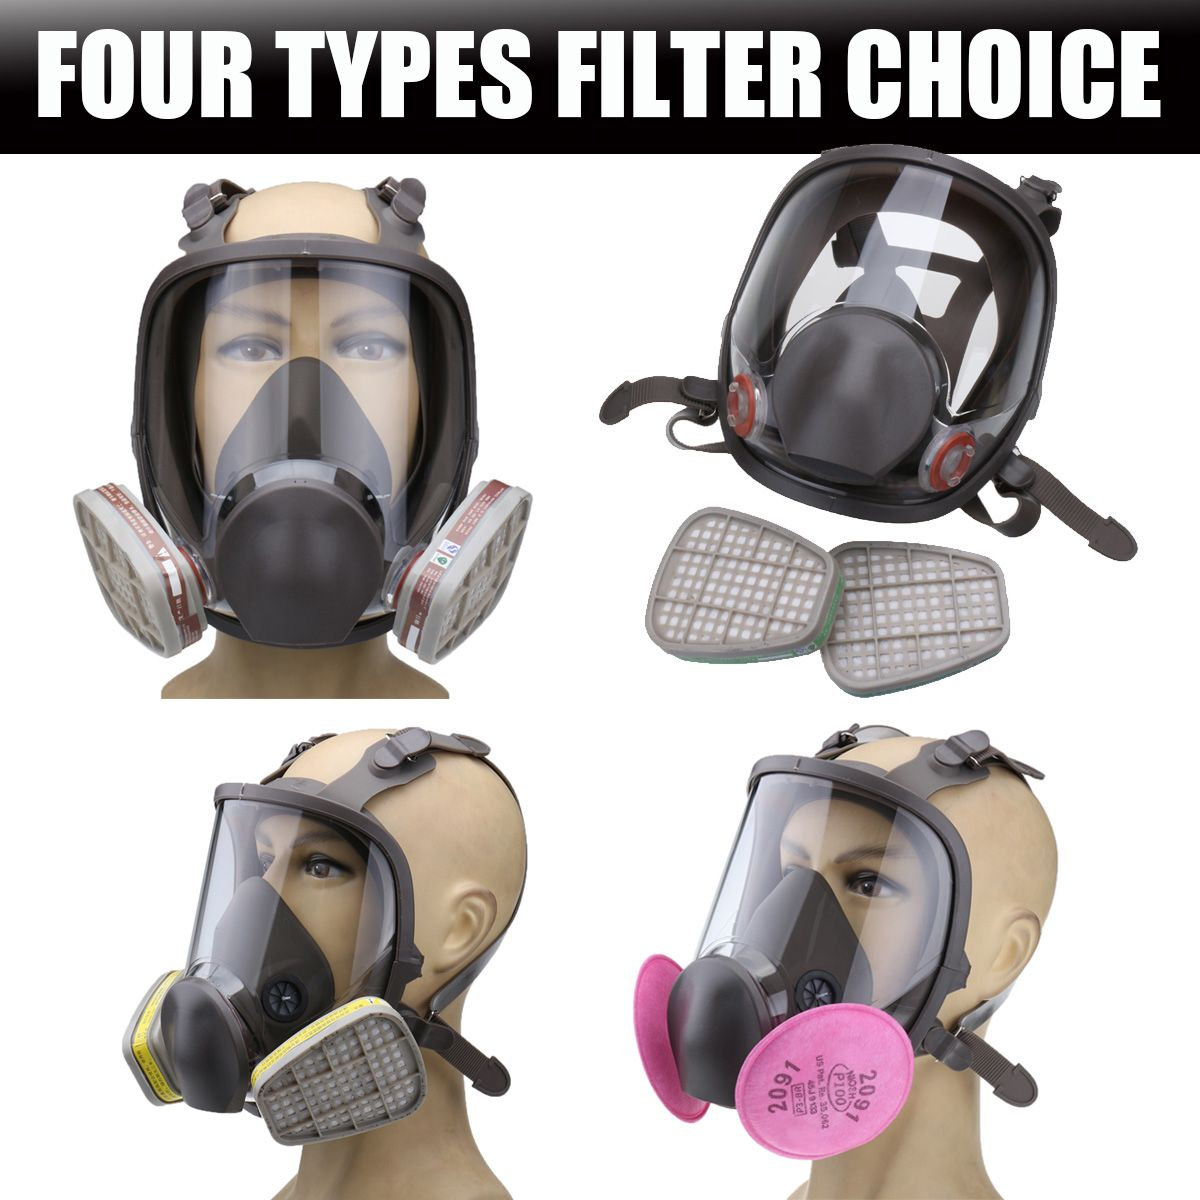 SAFURANCE Full Face Painting Spraying Respirator Gas Mask 2X Particulate Cotton Filter Workplace Safety Supplies Protective